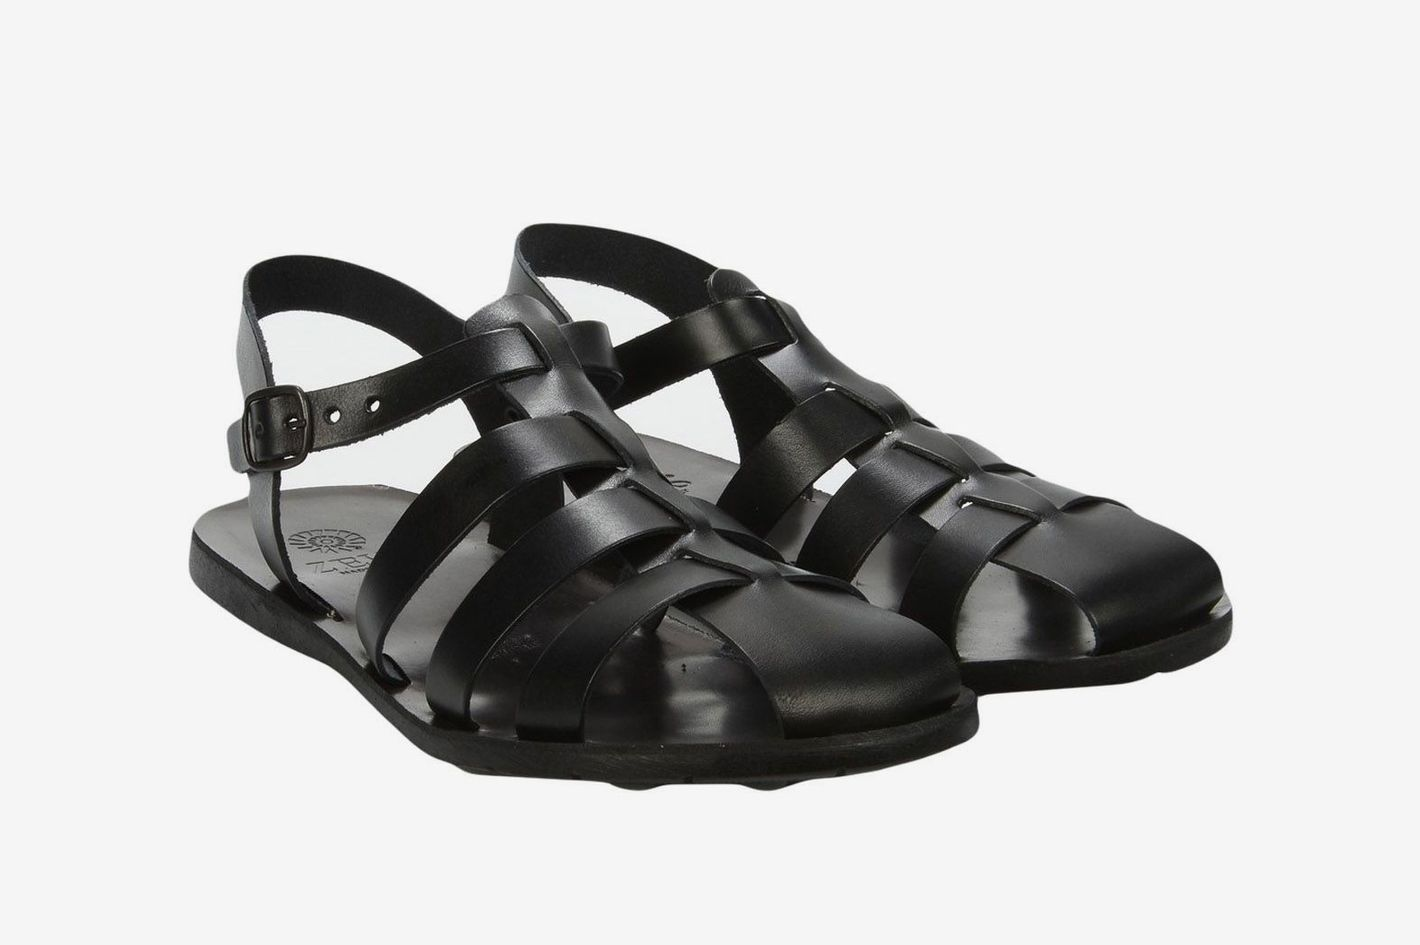 a3f8d7ea81e6a4 29 Stylish Men s Sandals to Wear This Summer